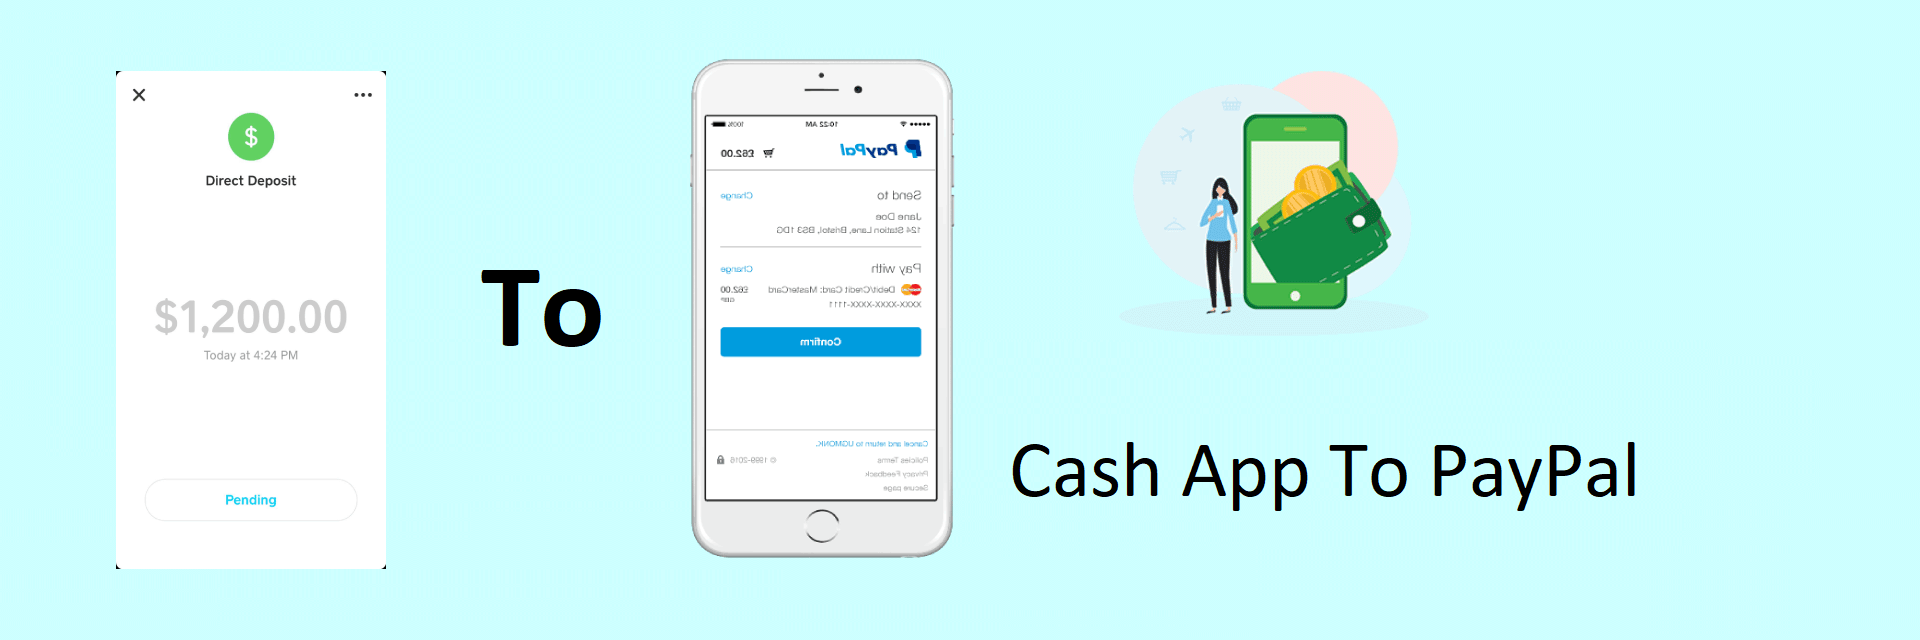 How to send money from the cash app to PayPal?